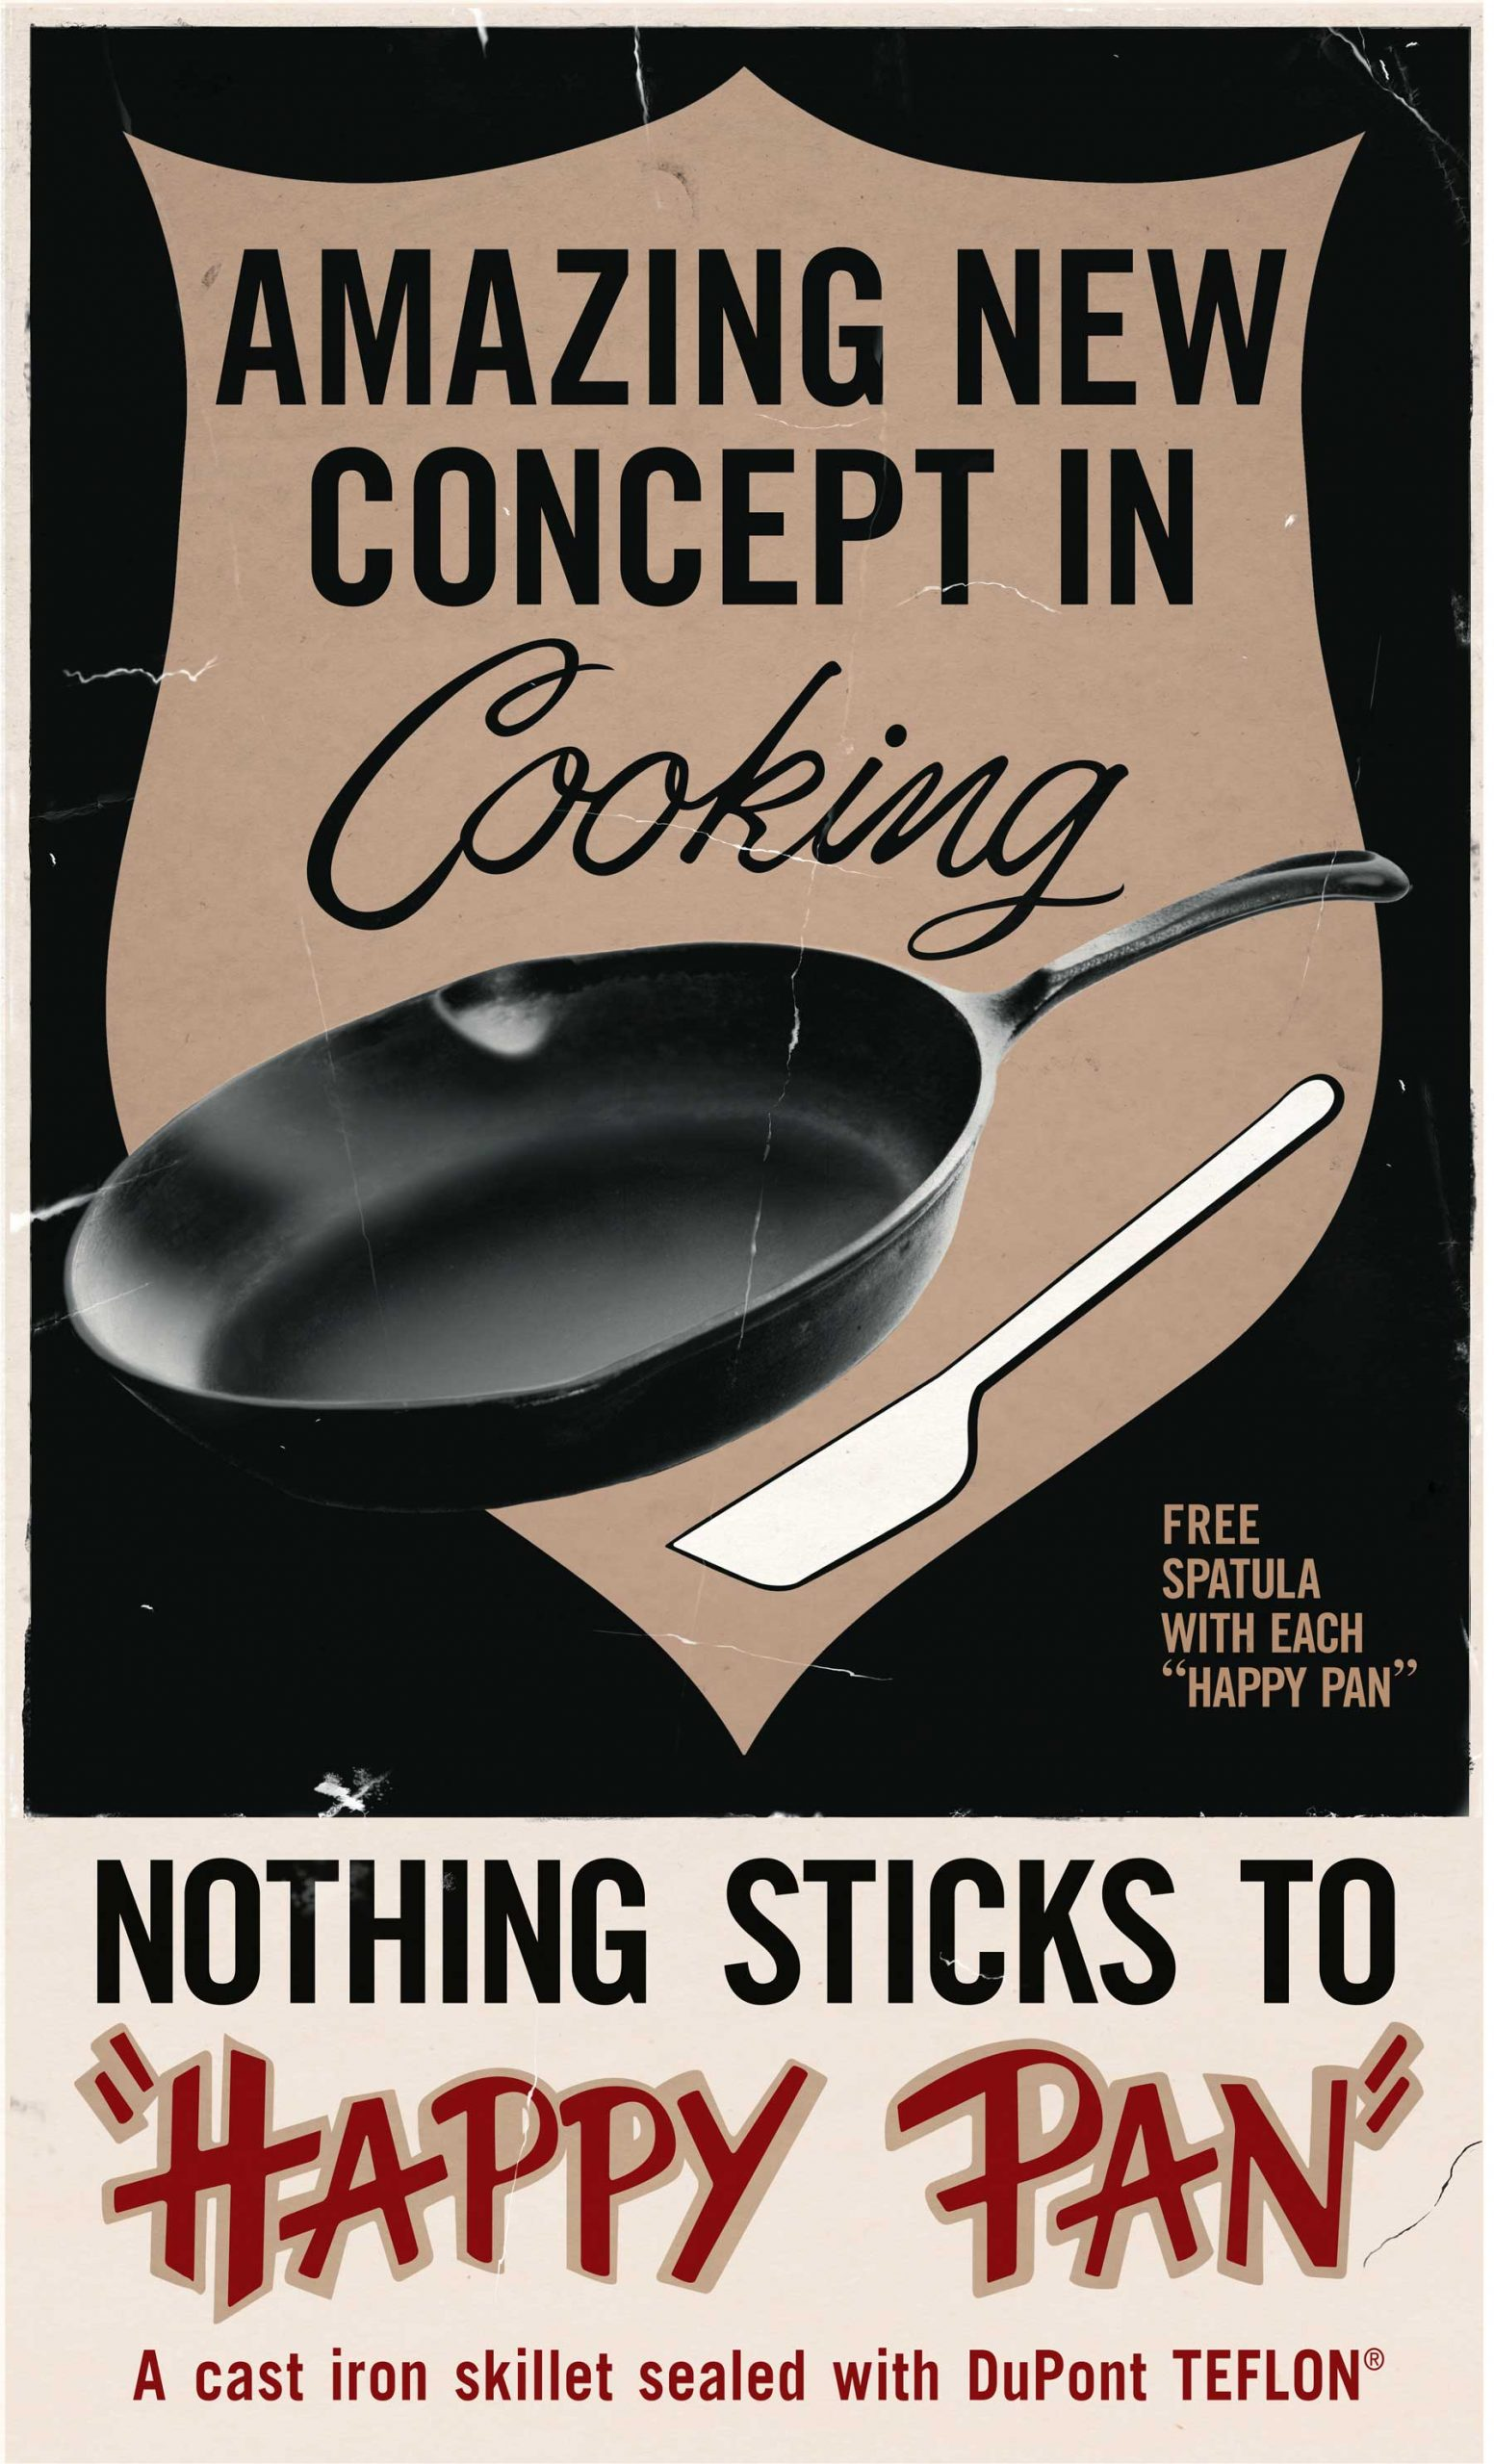 Advertisement for a Teflon-coated pan from the 1960s